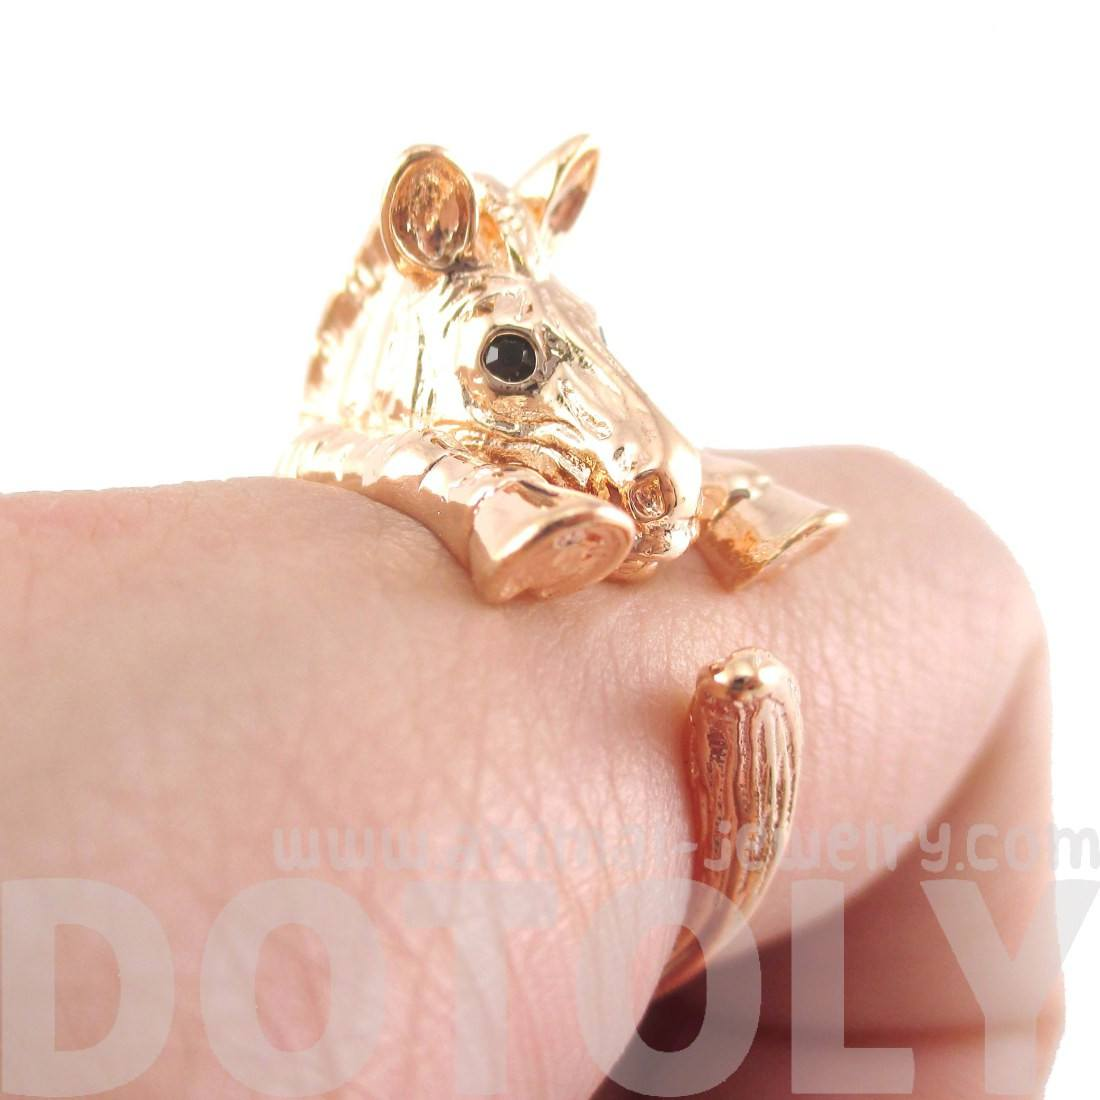 3D Zebra Shaped Animal Wrap Around Ring in Shiny Copper